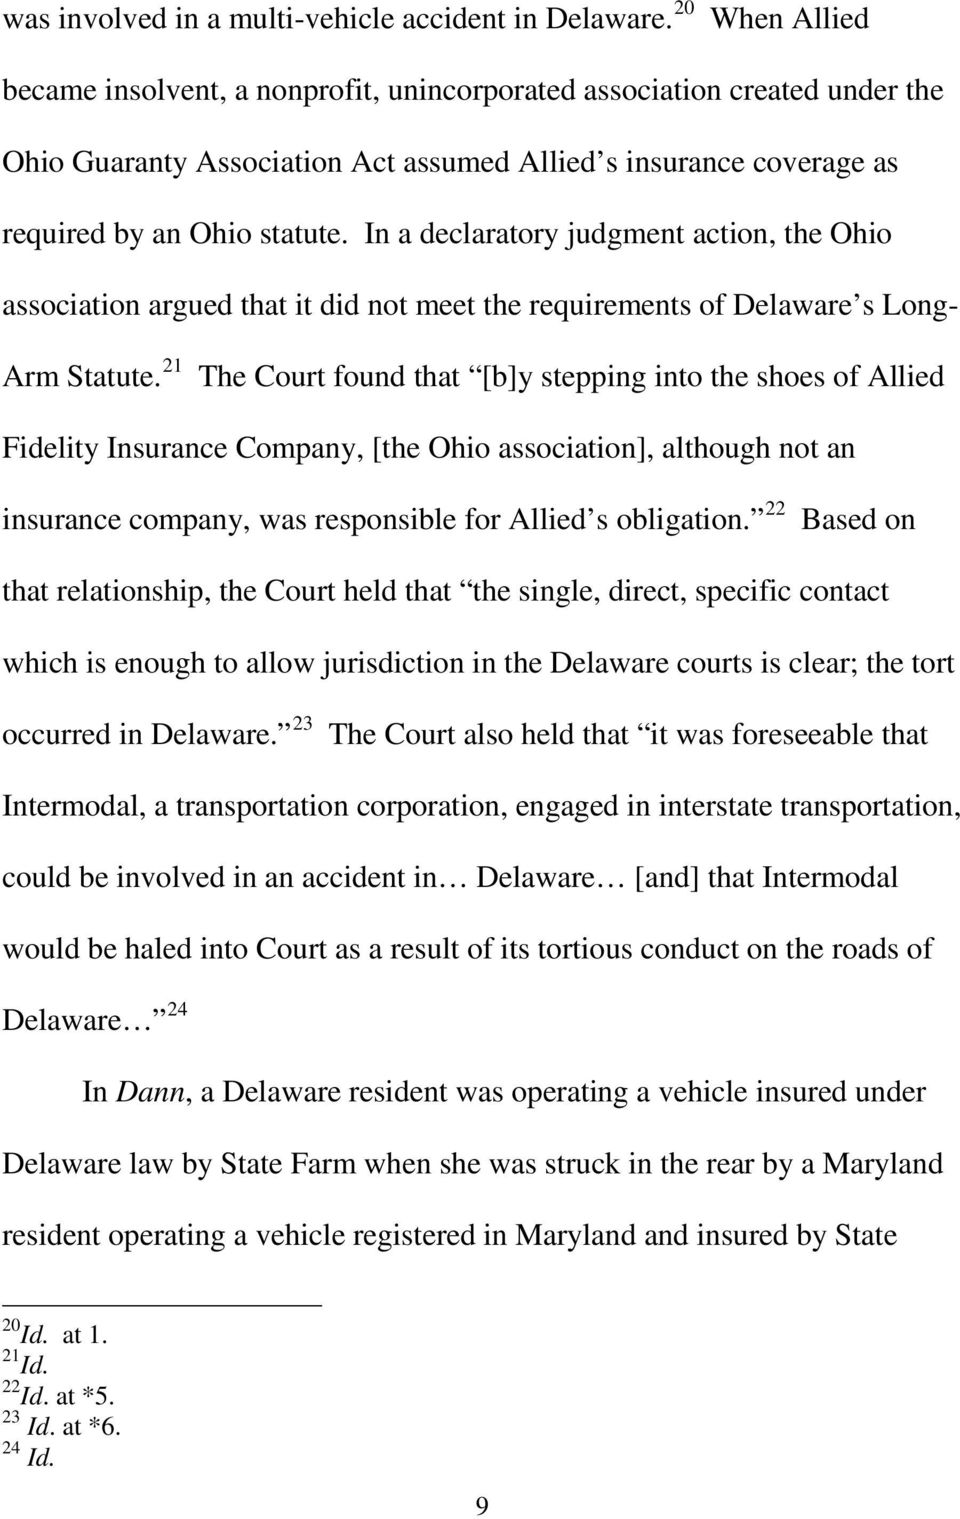 In a declaratory judgment action, the Ohio association argued that it did not meet the requirements of Delaware s Long- Arm Statute.